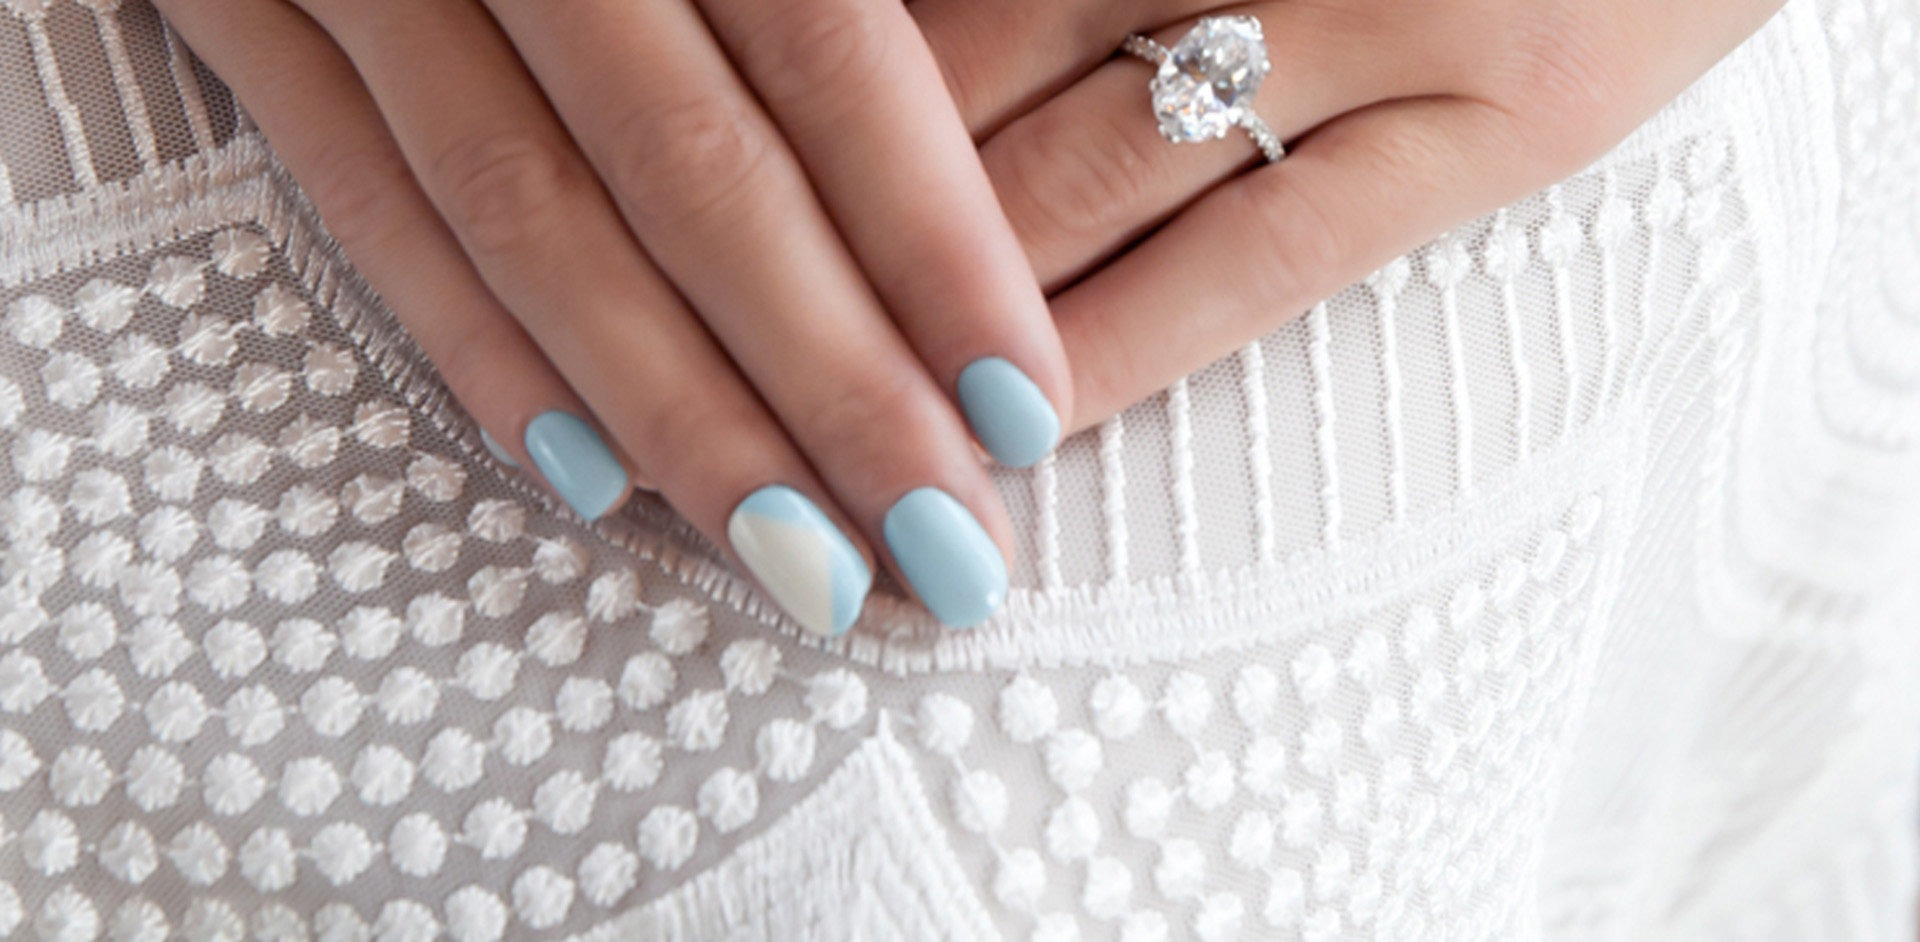 Bridal wedding nail polish shades